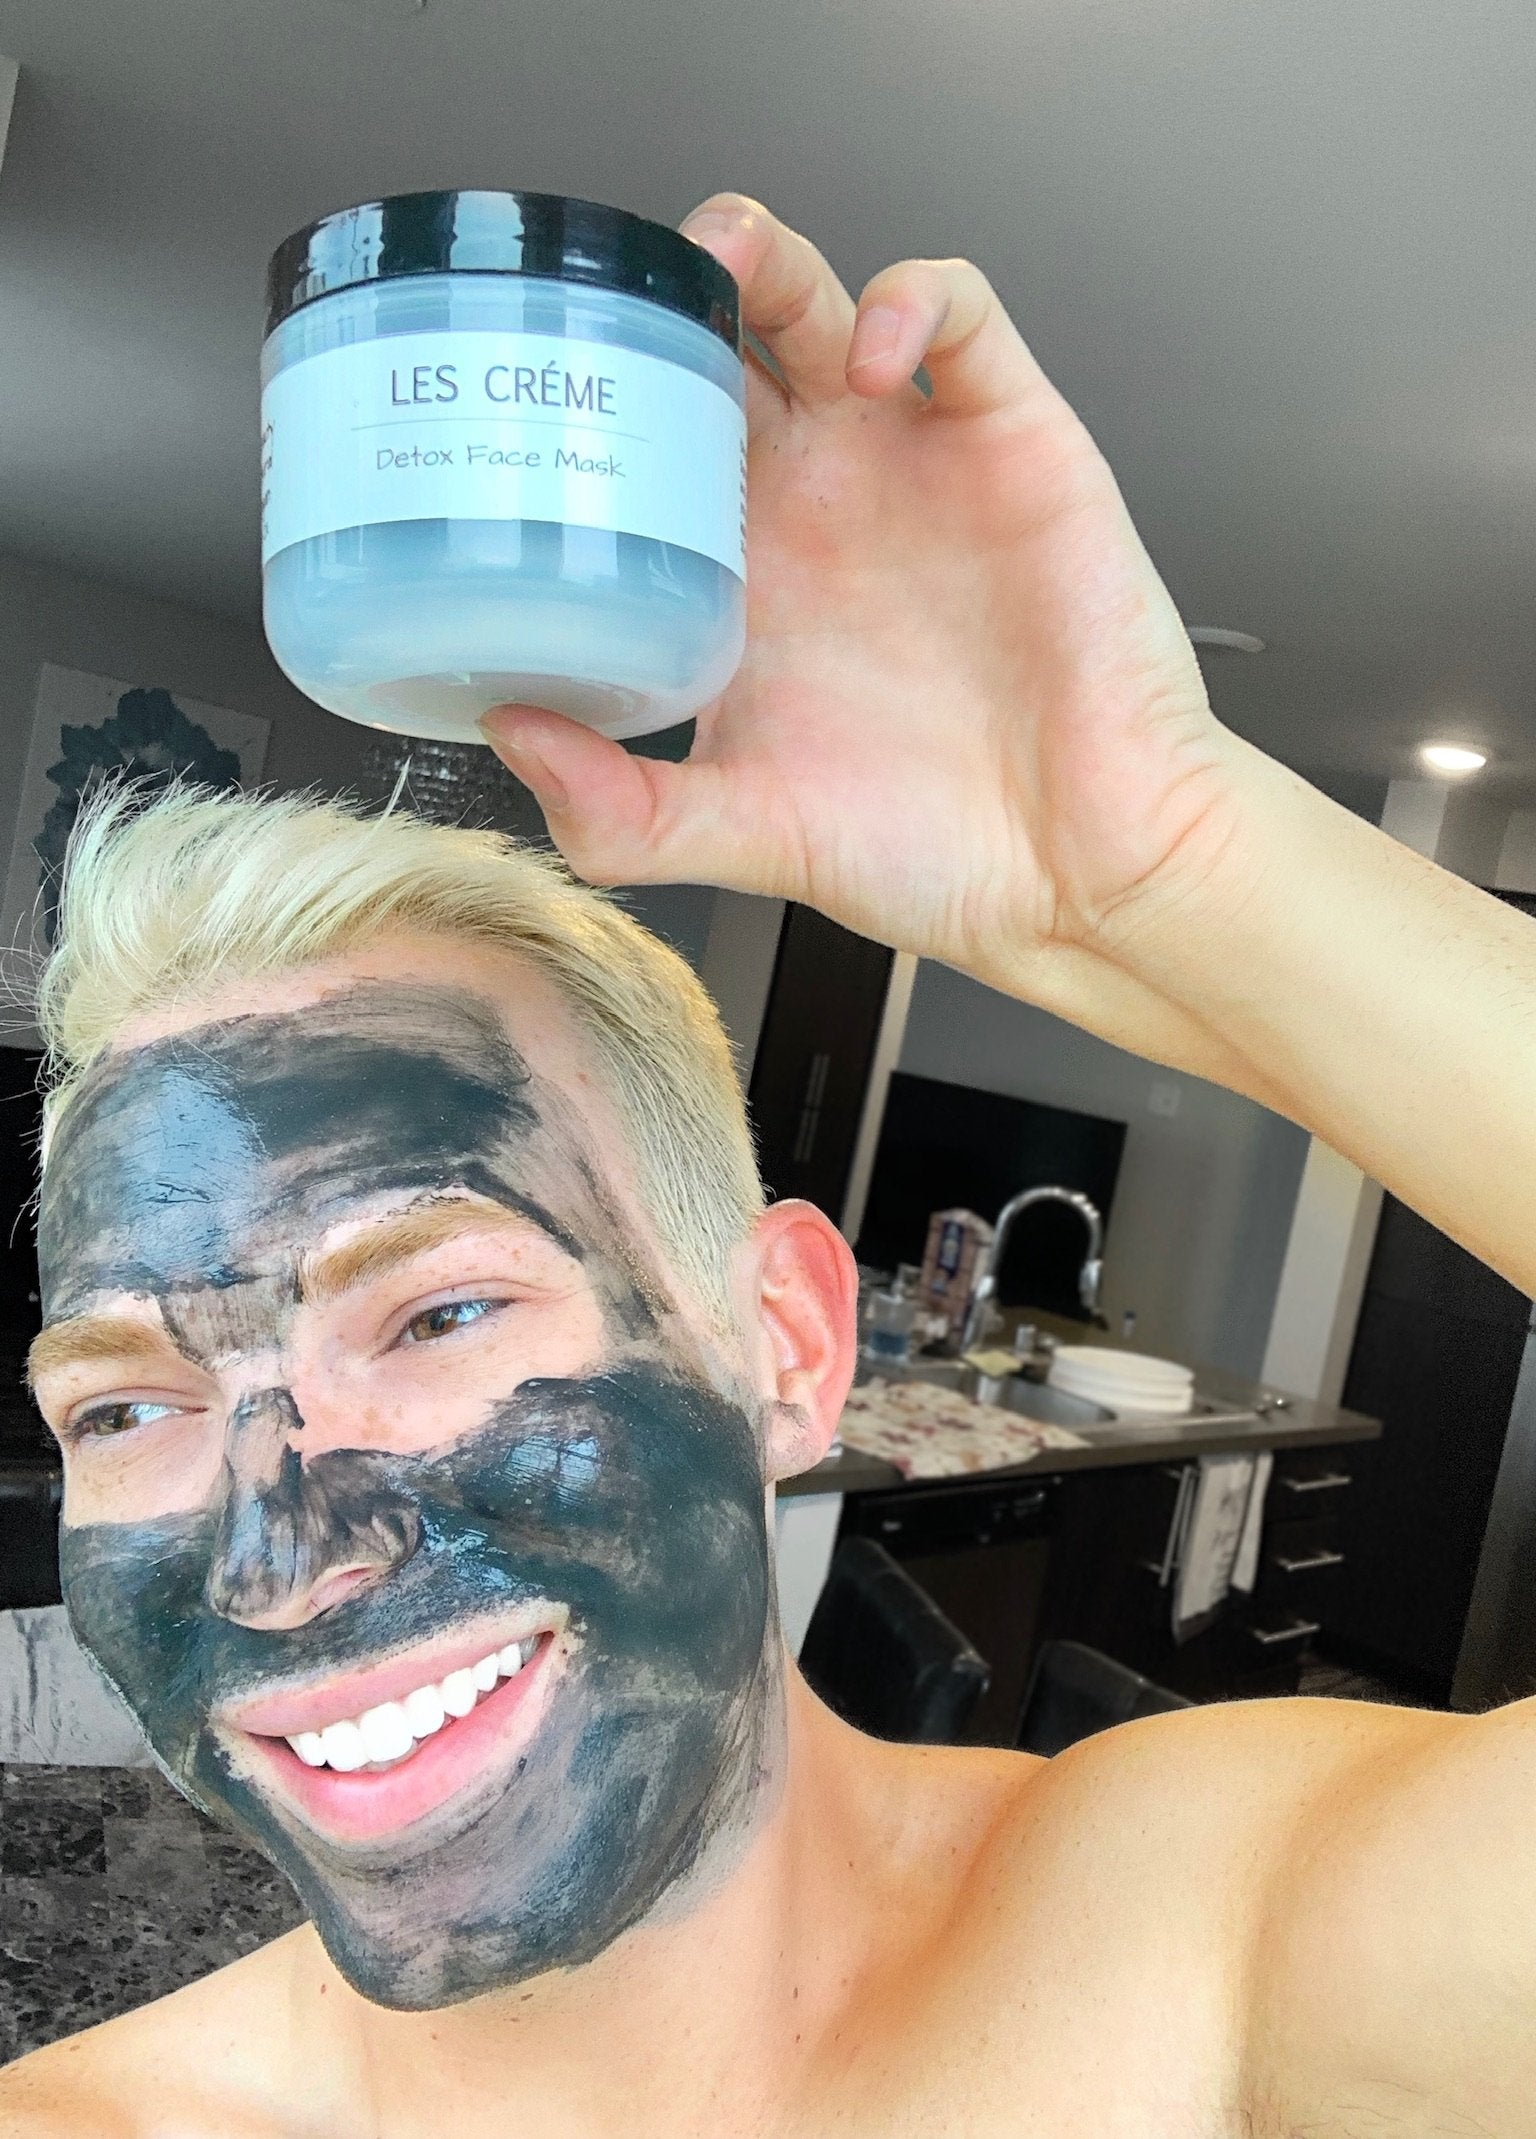 Weekly Detox Facial Mask